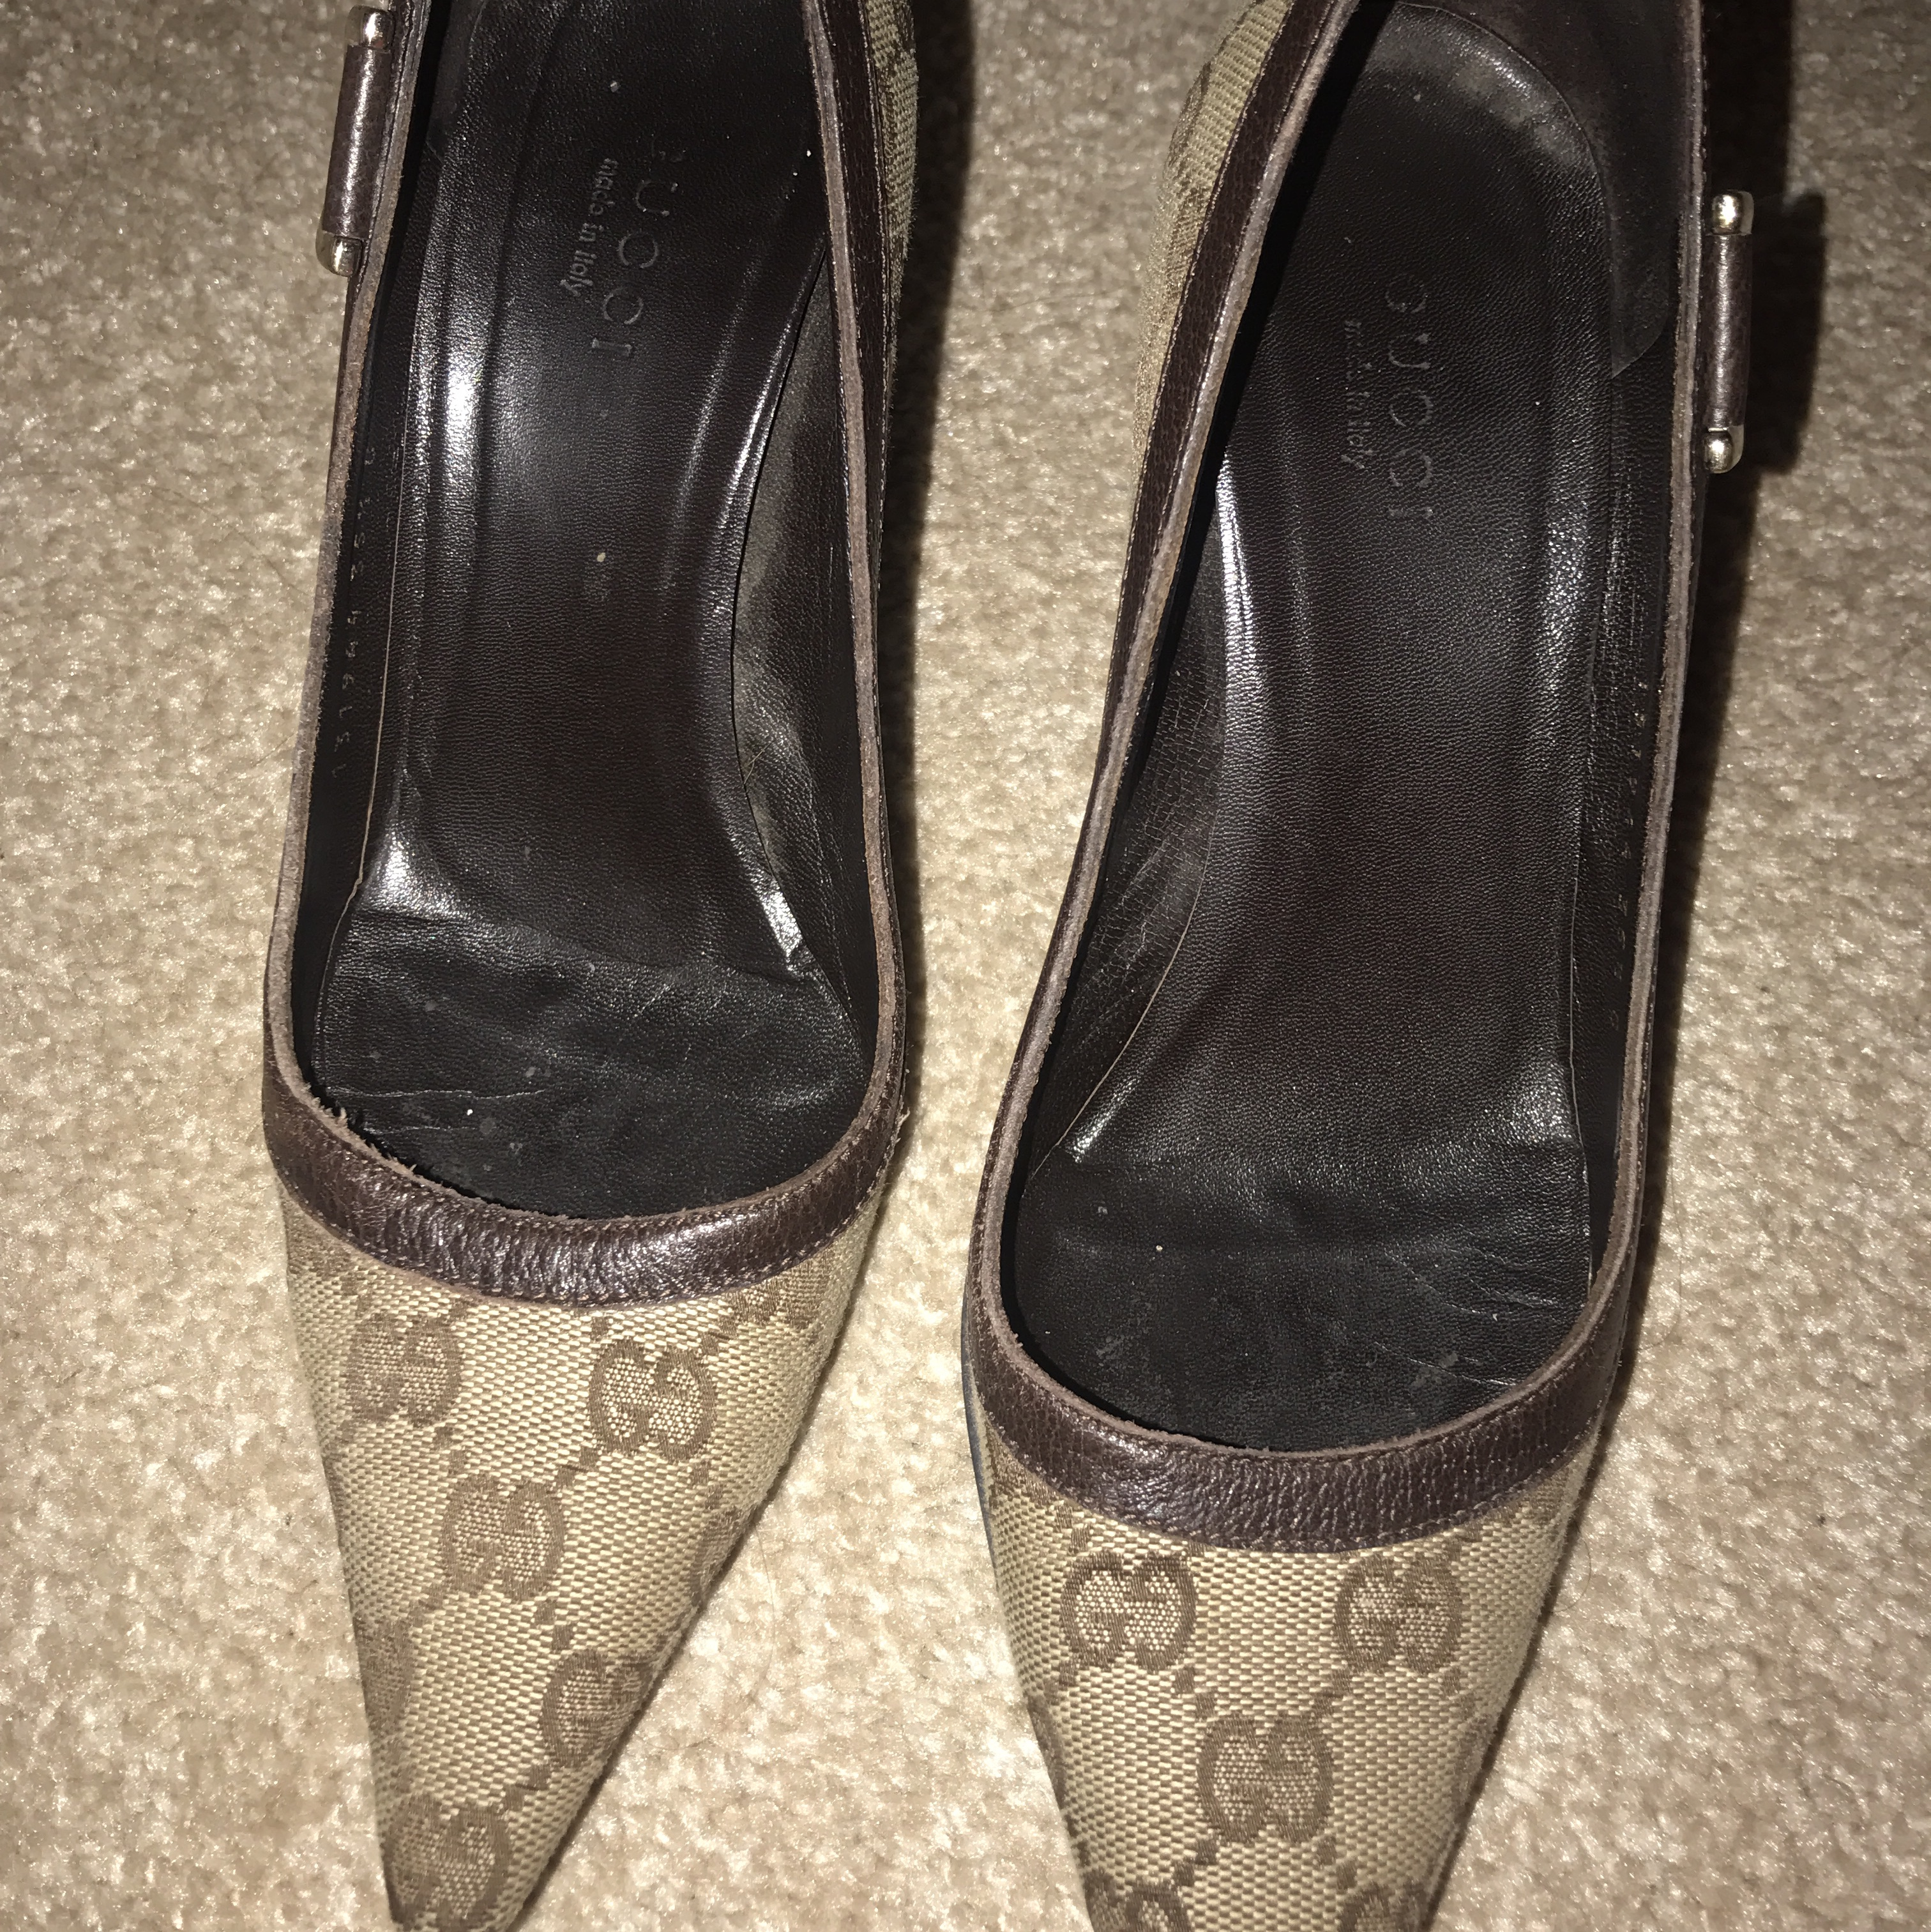 c848119ae81 Gucci heels 100% genuine. Will not accept liability after - Depop